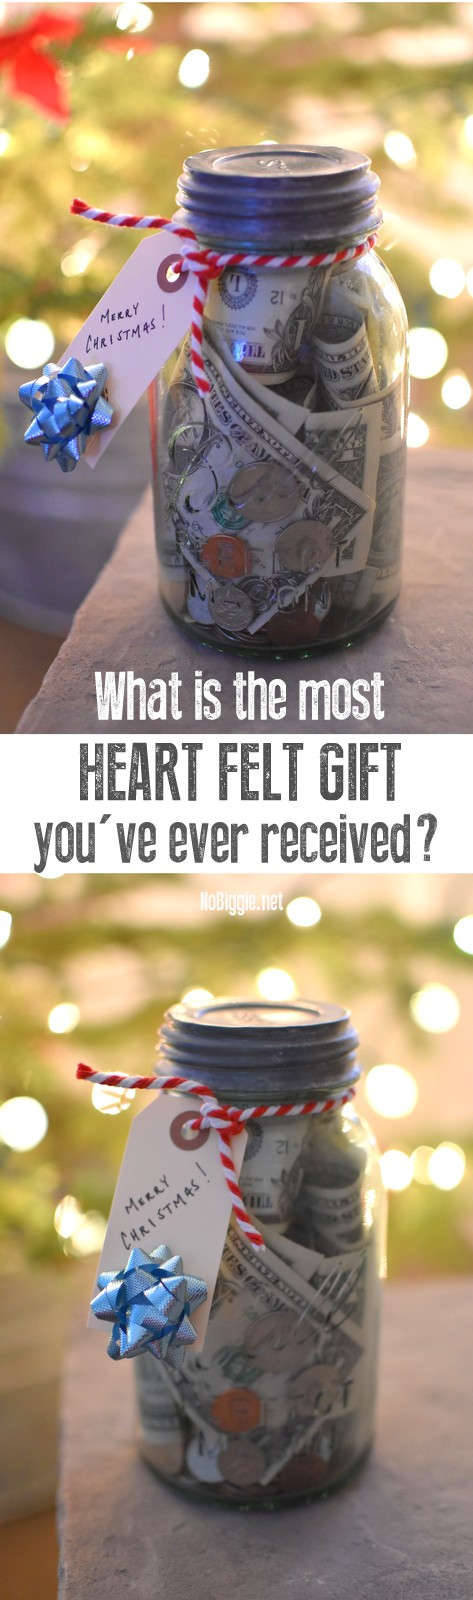 What is the most heart felt gift you've ever received?